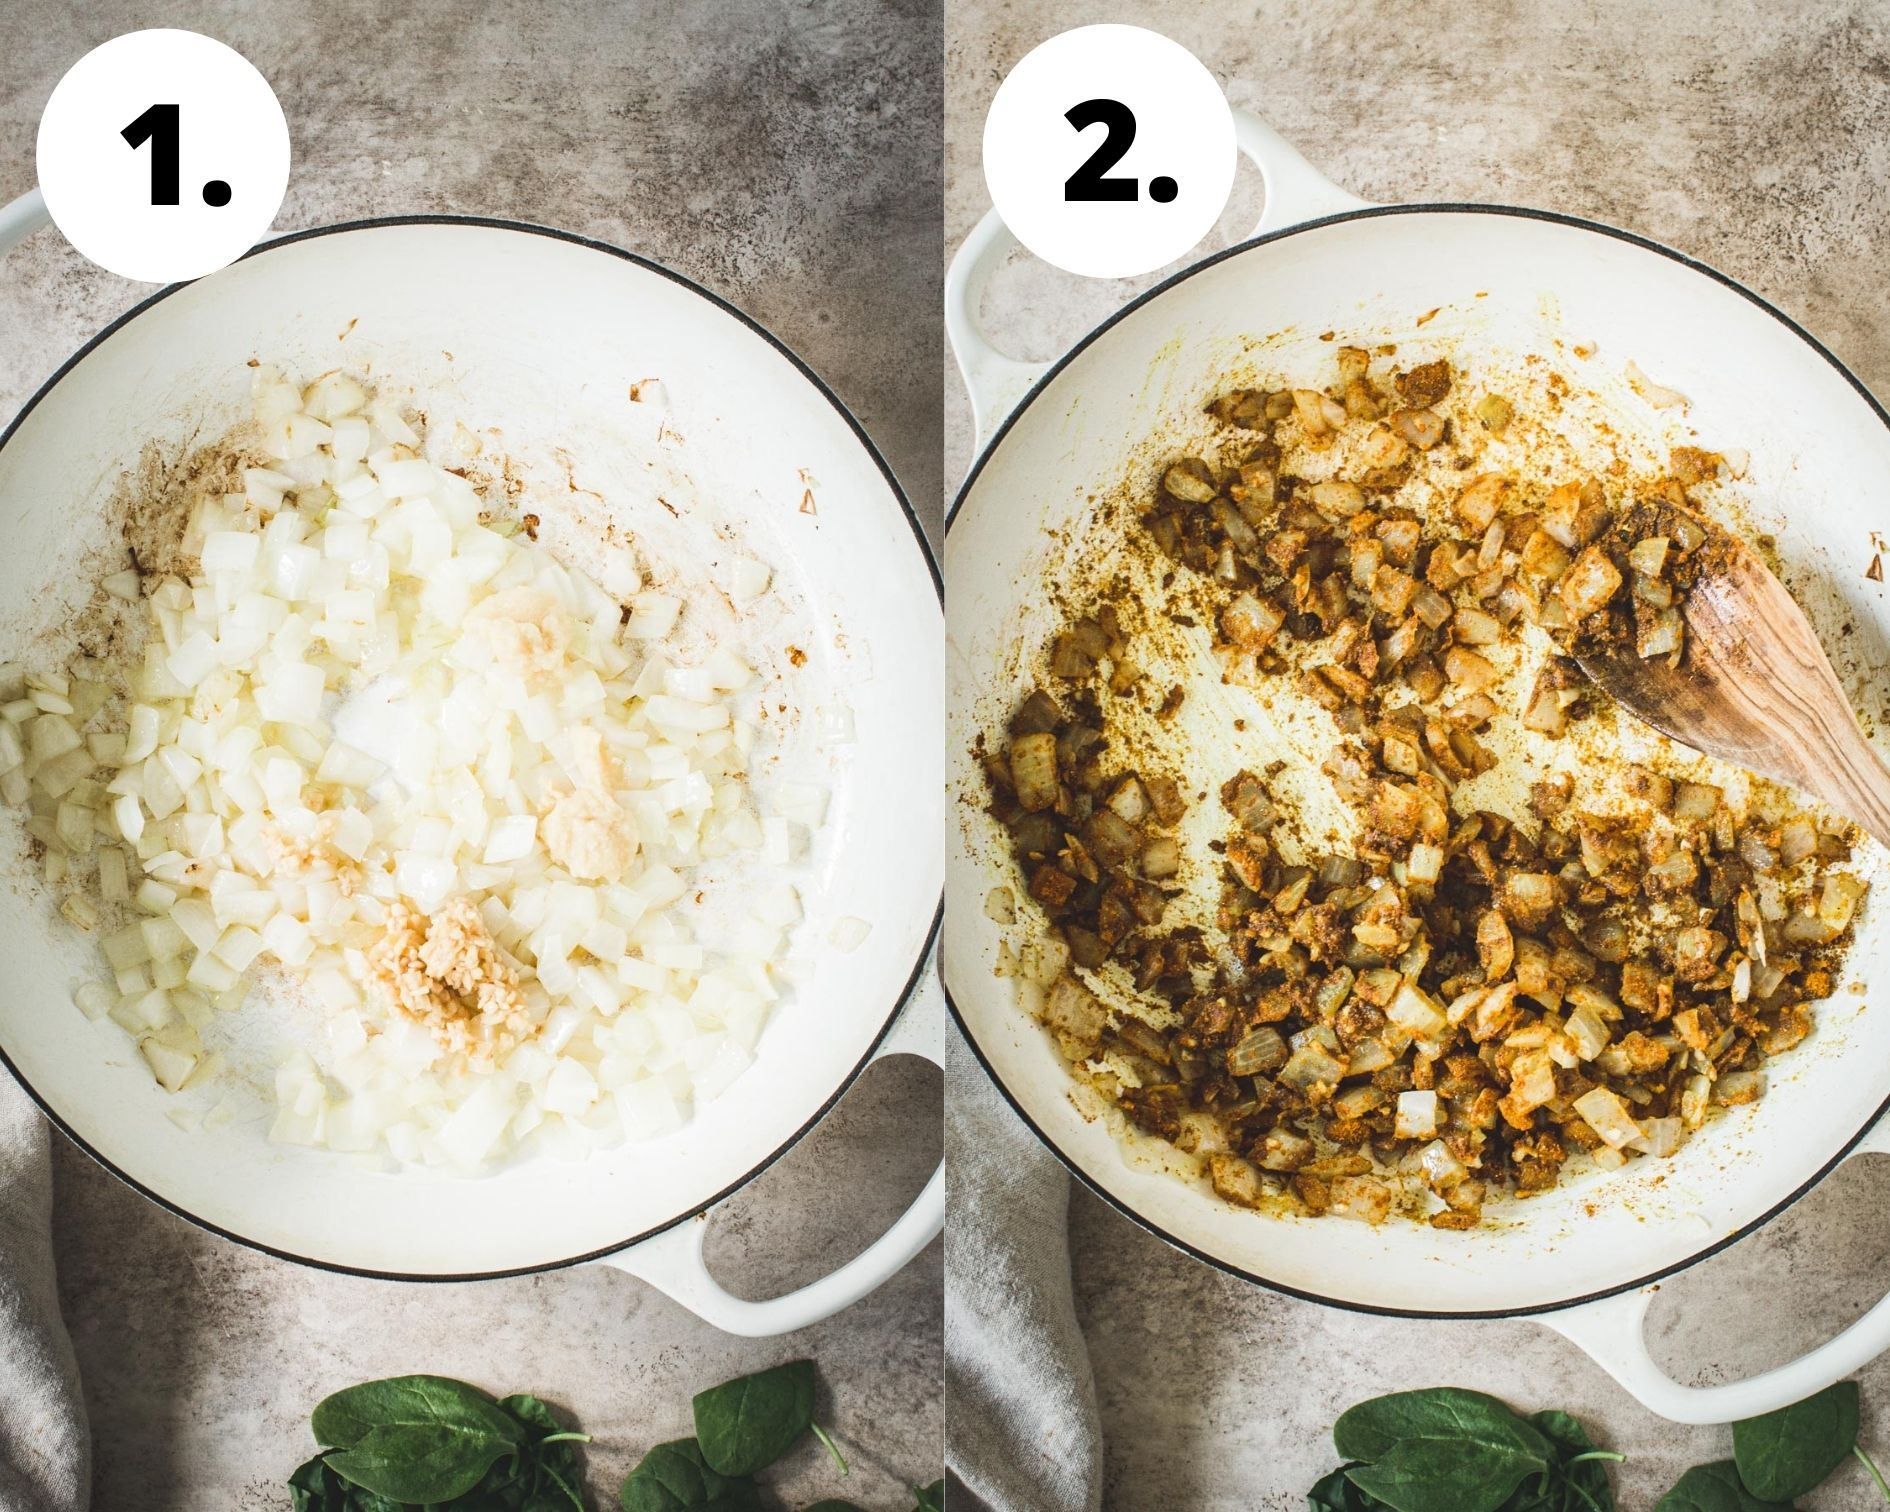 Chickpea spinach curry process steps 1 and 2.